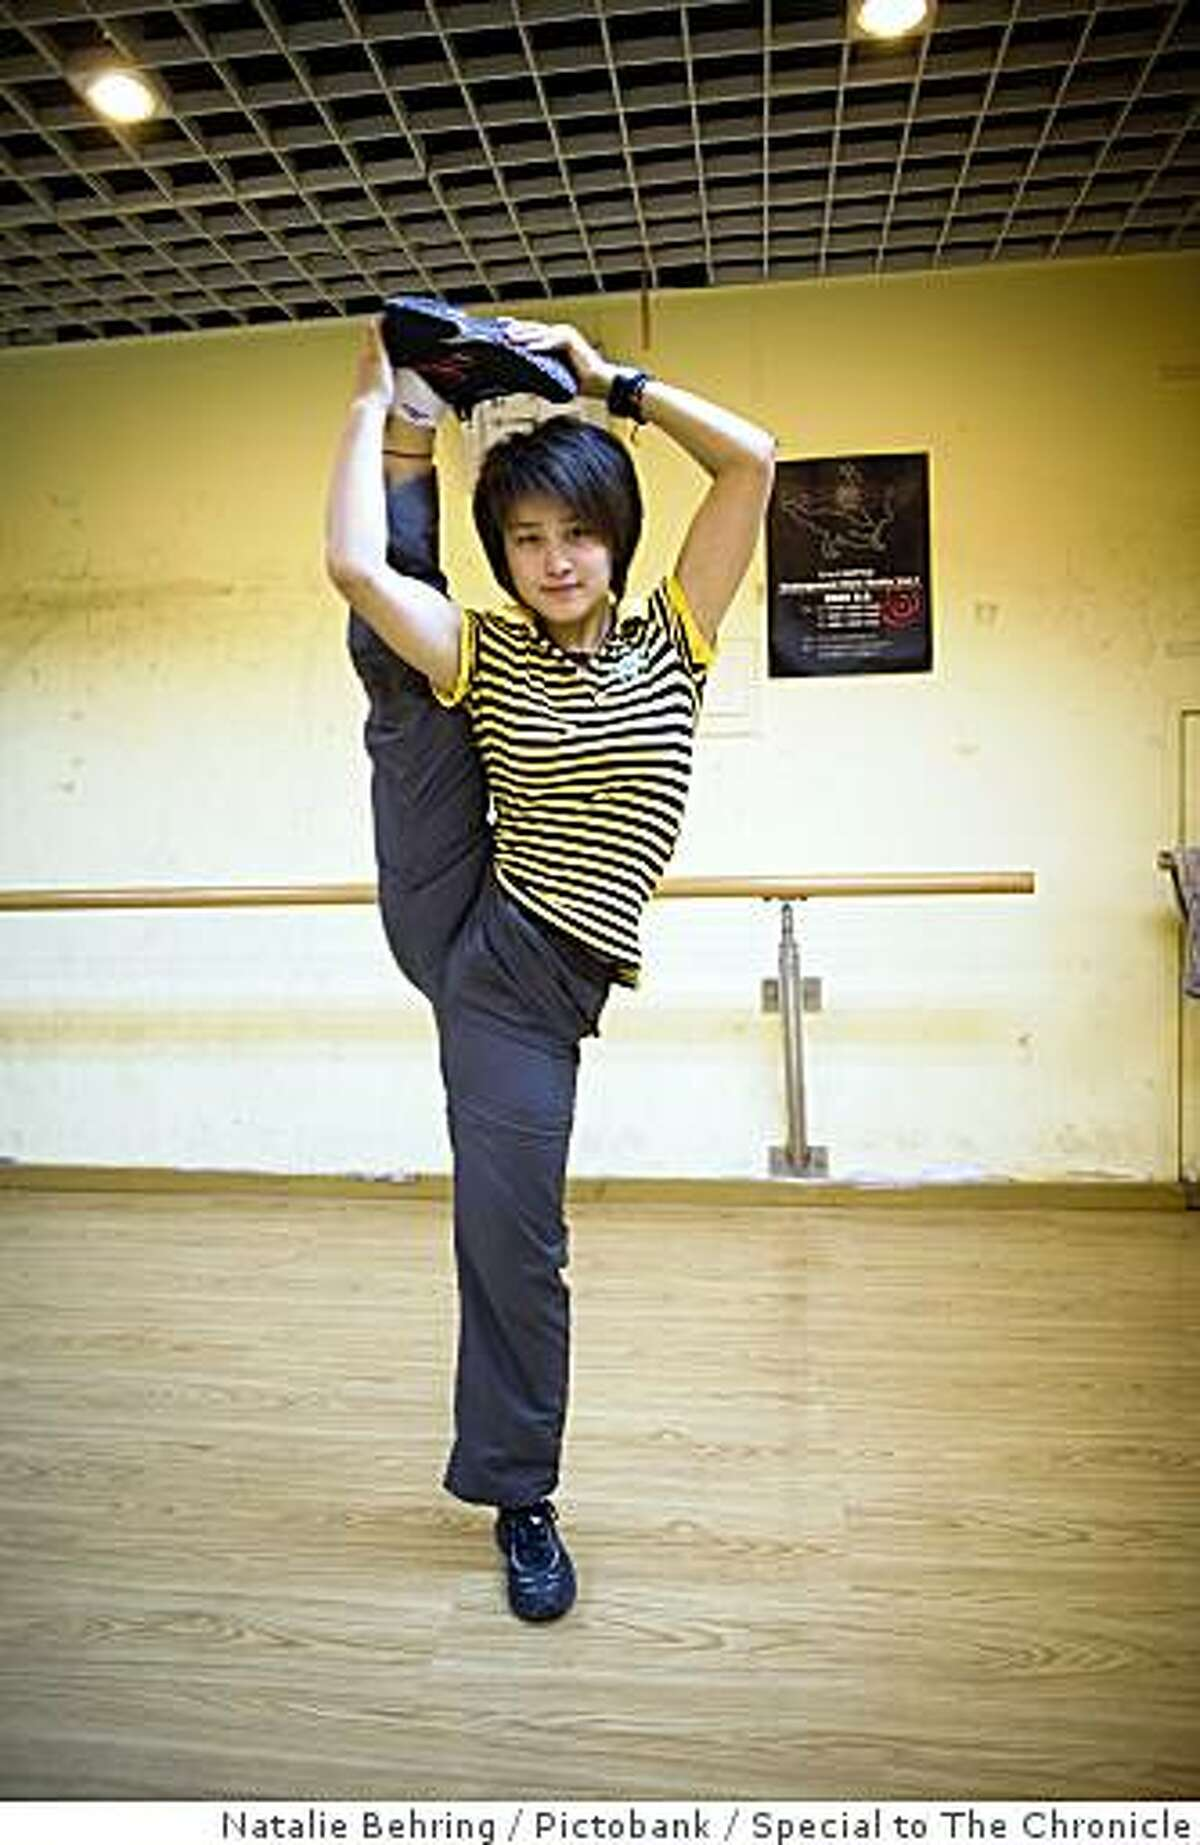 Chinese blogger Maoer baby demonstrated her Wushu (kungfu) ability in Beijing. Photo by Natalie Behring / Pictobank / Special to The Chronicle